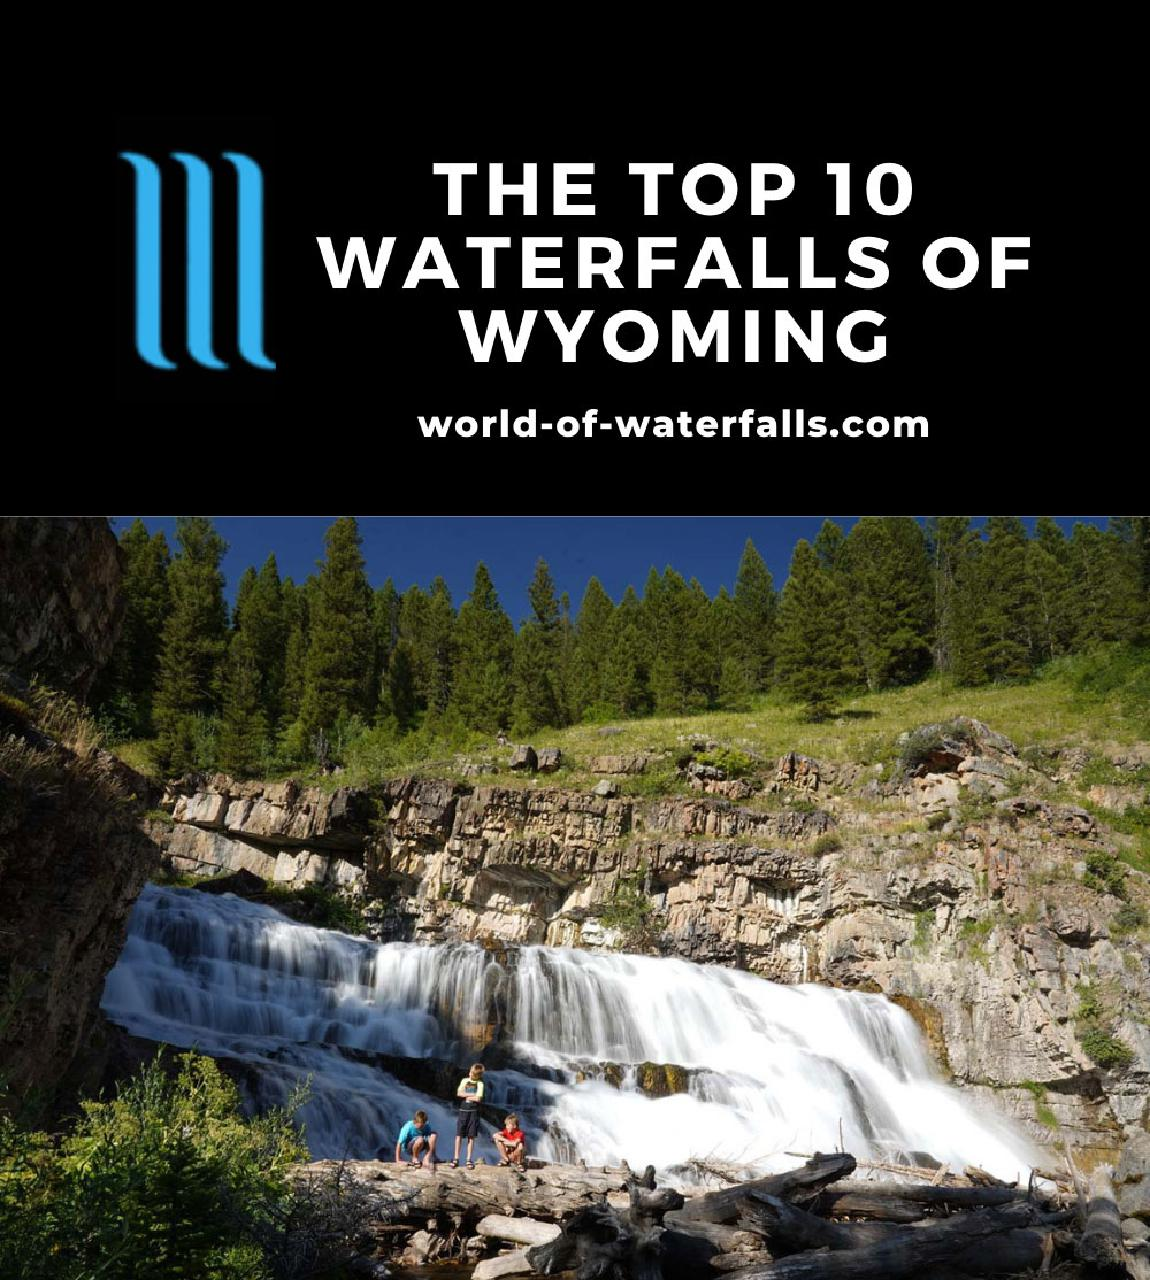 The Top 10 Waterfalls of Wyoming